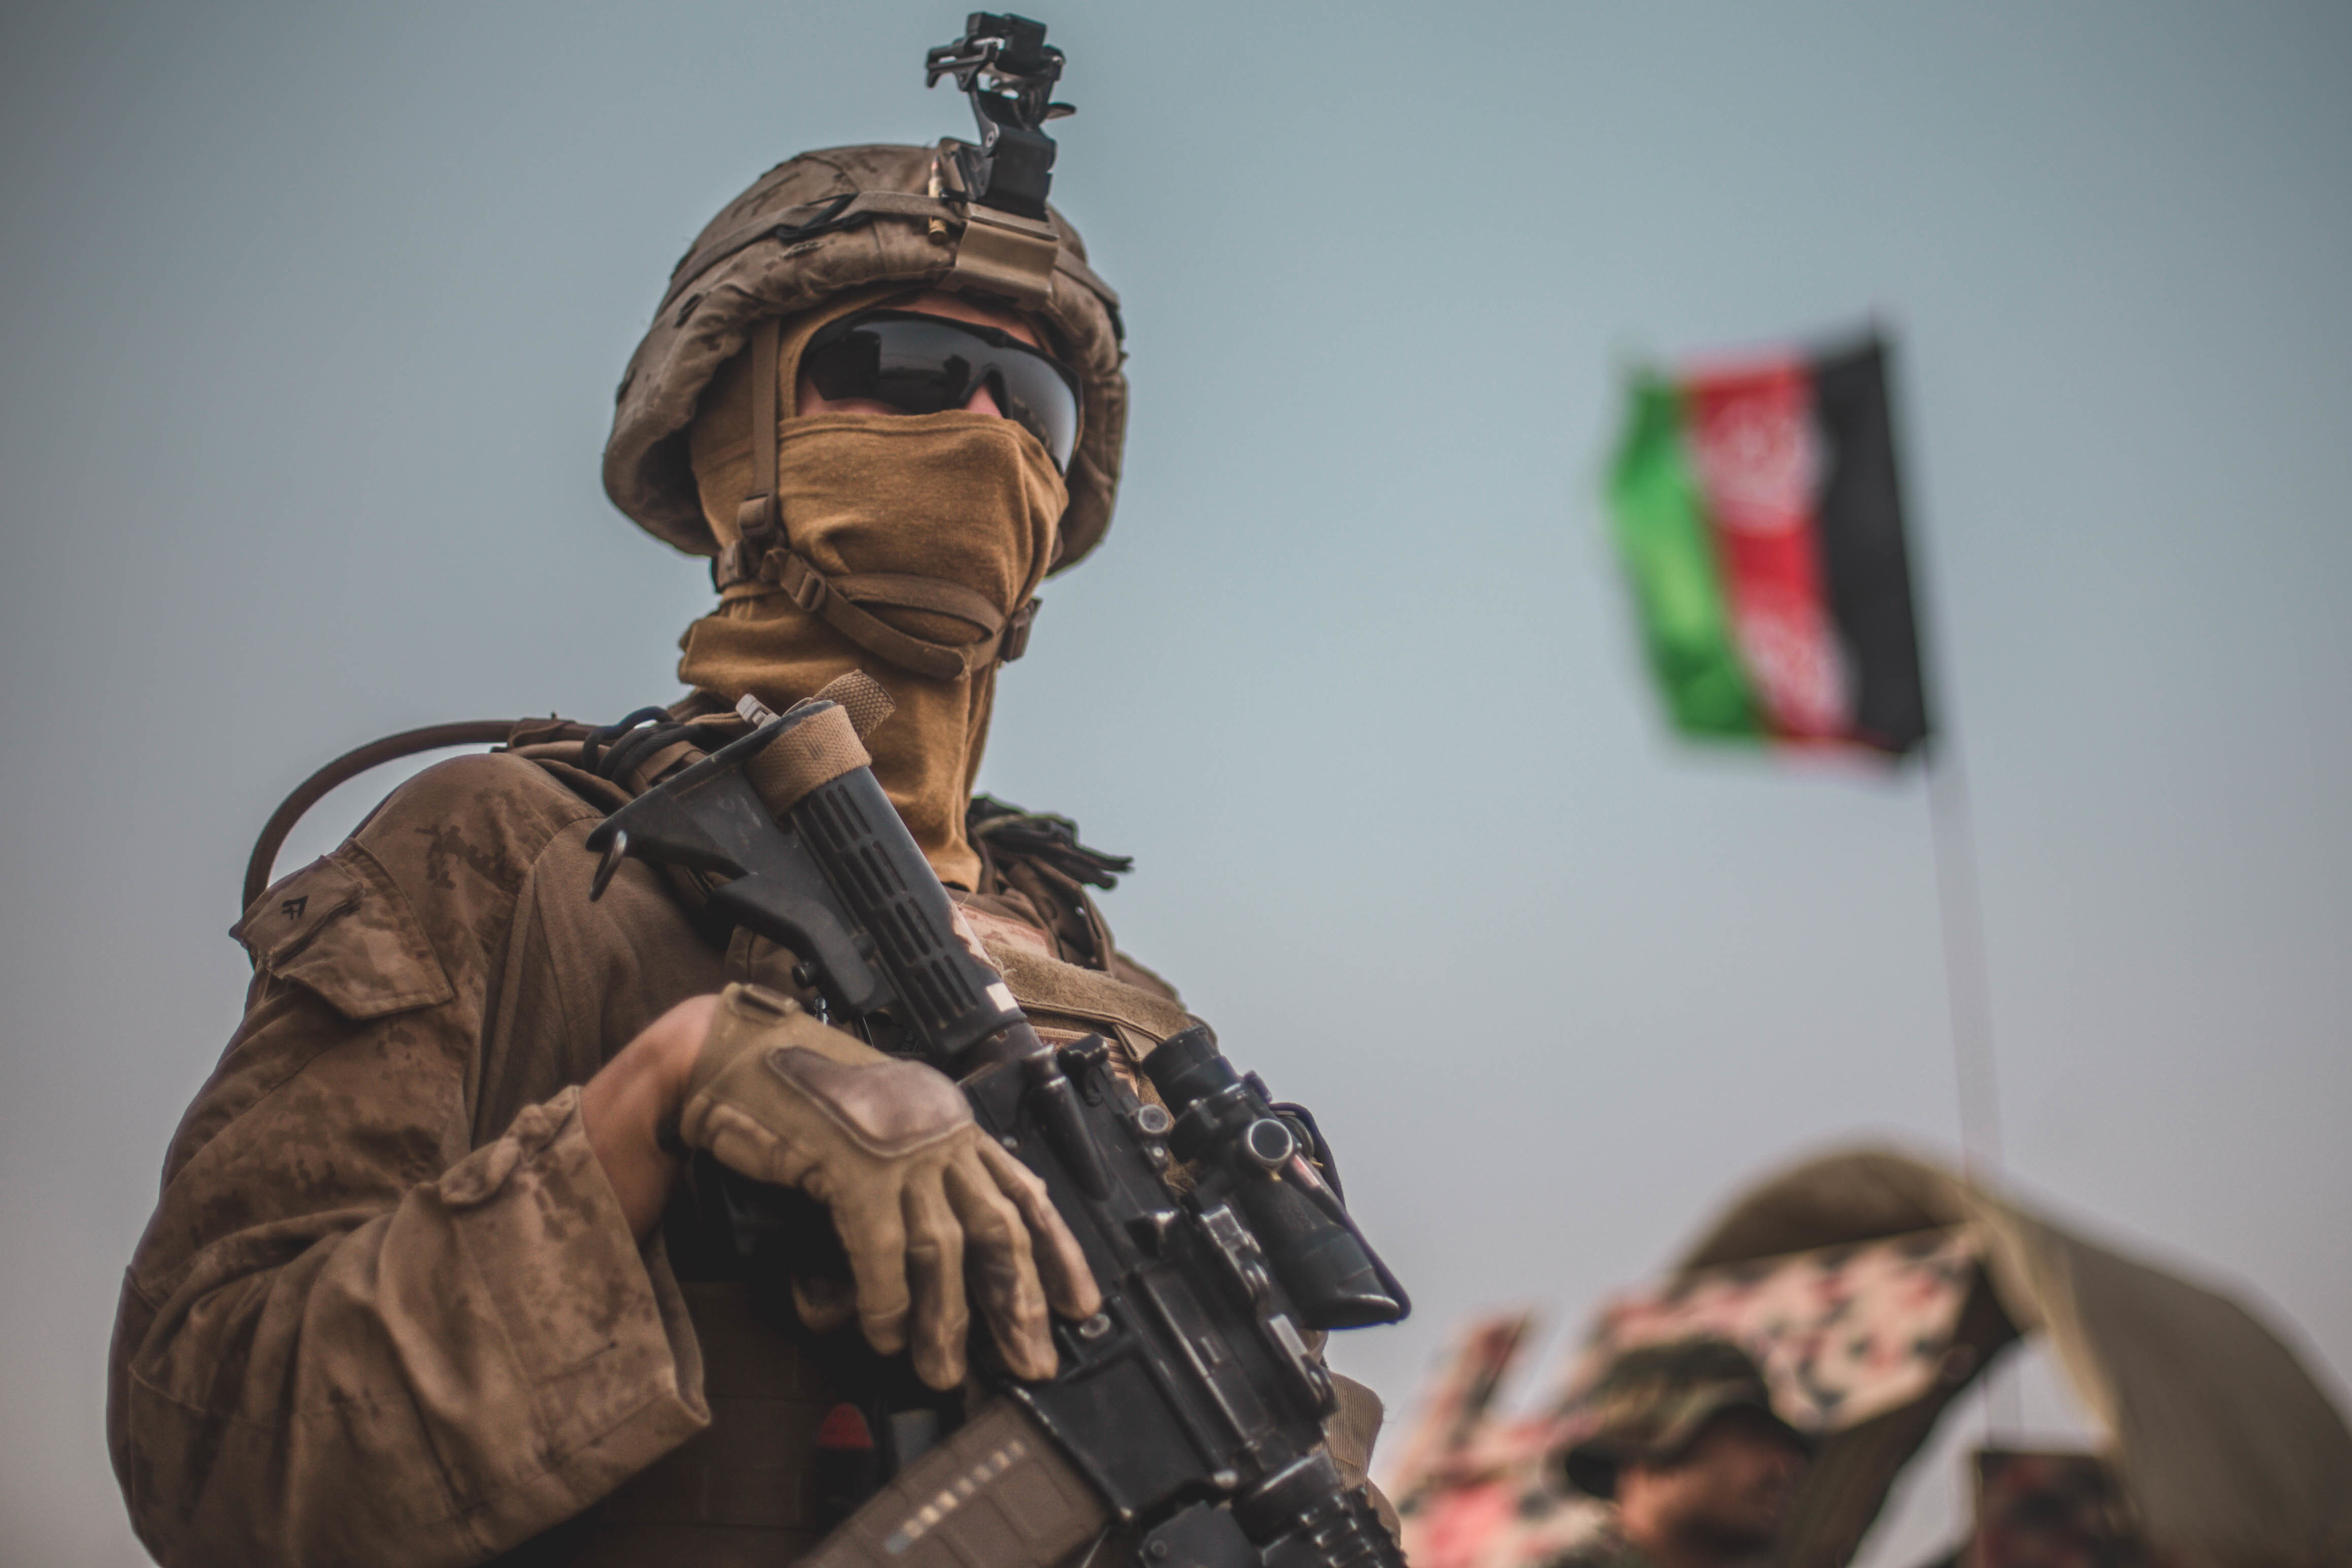 a us marine with task force southwest tfsw provides security for marine advisors during an advising mission with 1st brigade afghan national army ana